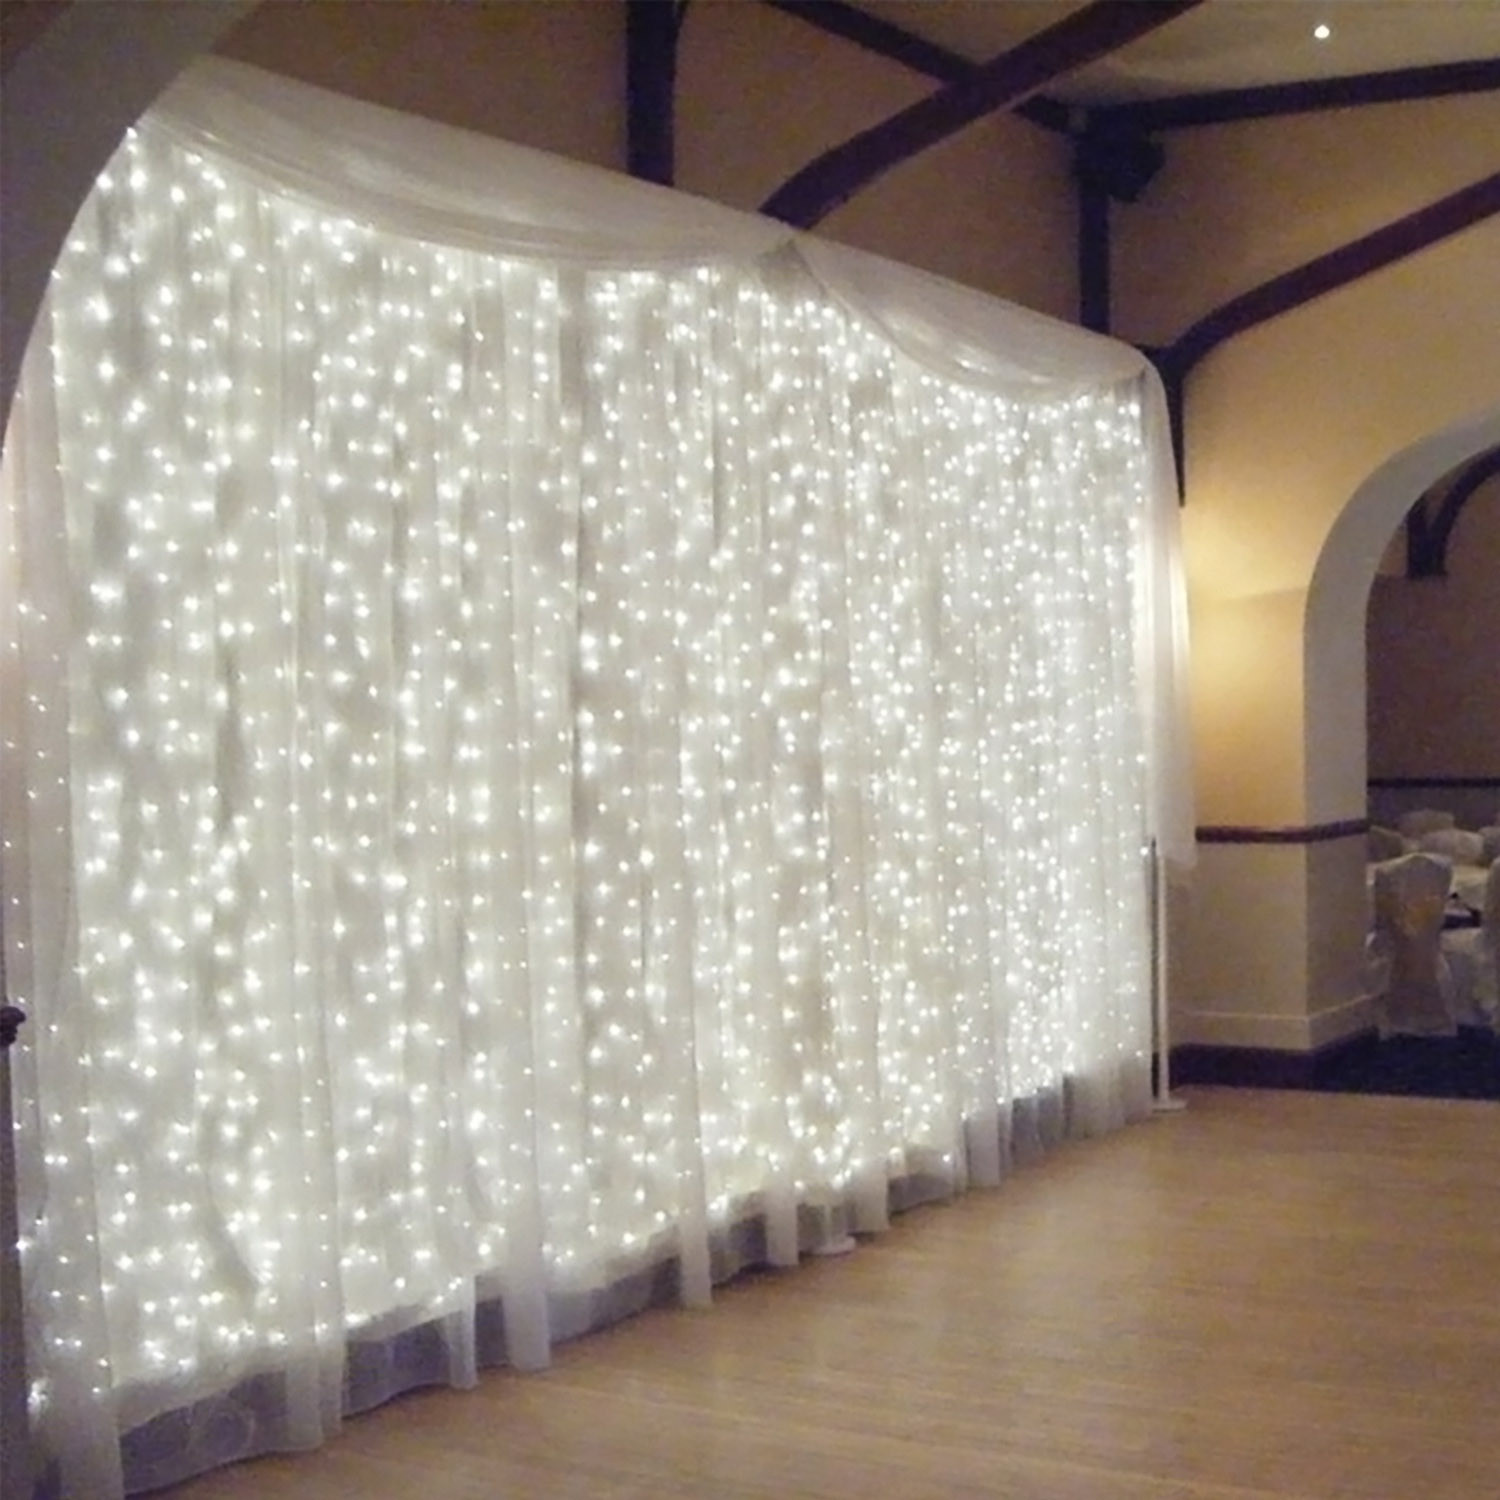 Torchstar 9.8ft X 9.8ft Led Curtain Lights, Starry Christmas String Light, Indoor Decoration For Festival Wedding Party Living Room Bedroom, Daylight by Torch Star